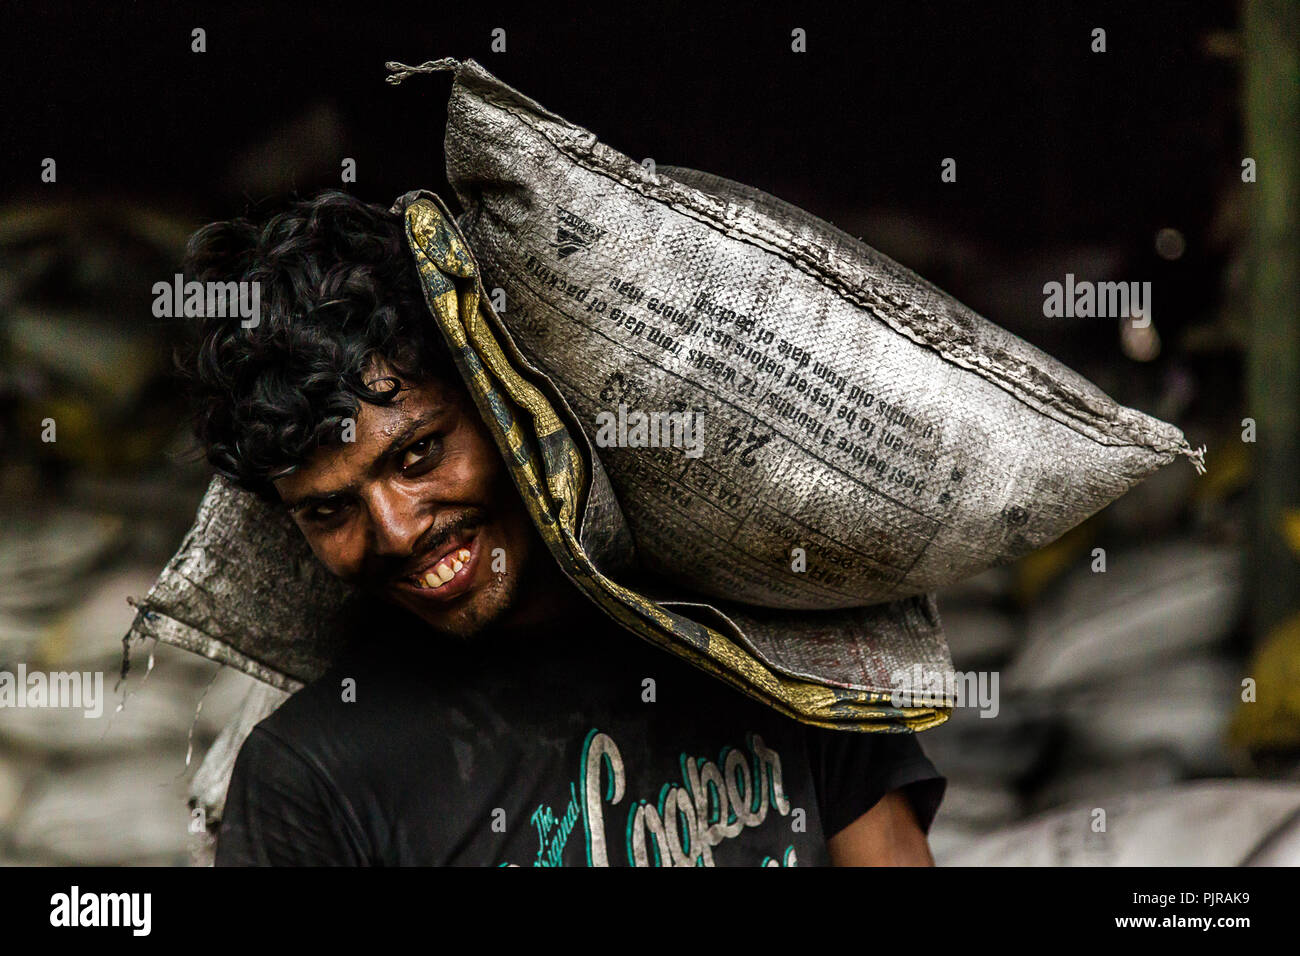 Foundry workers - Stock Image